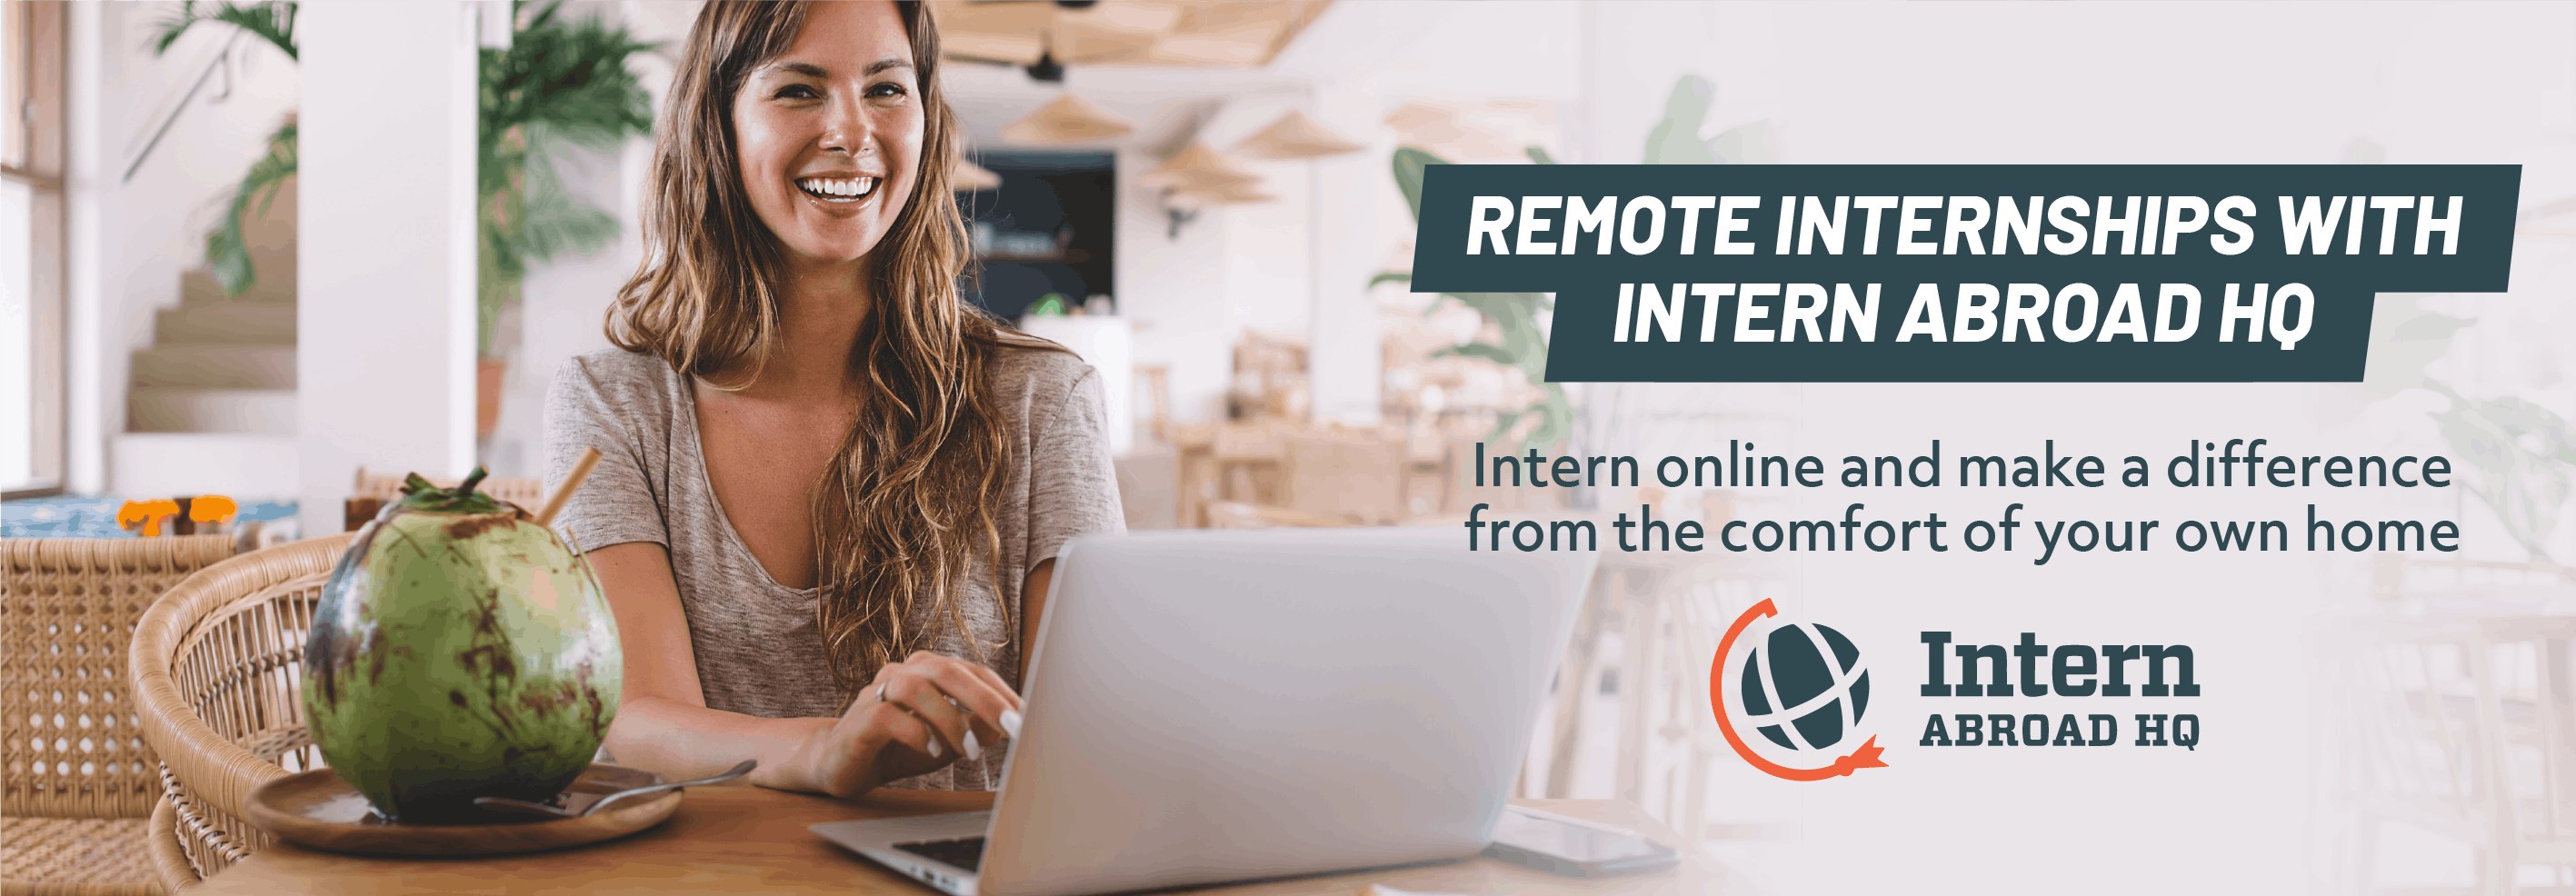 Remote Internship Programs with Intern Abroad HQ